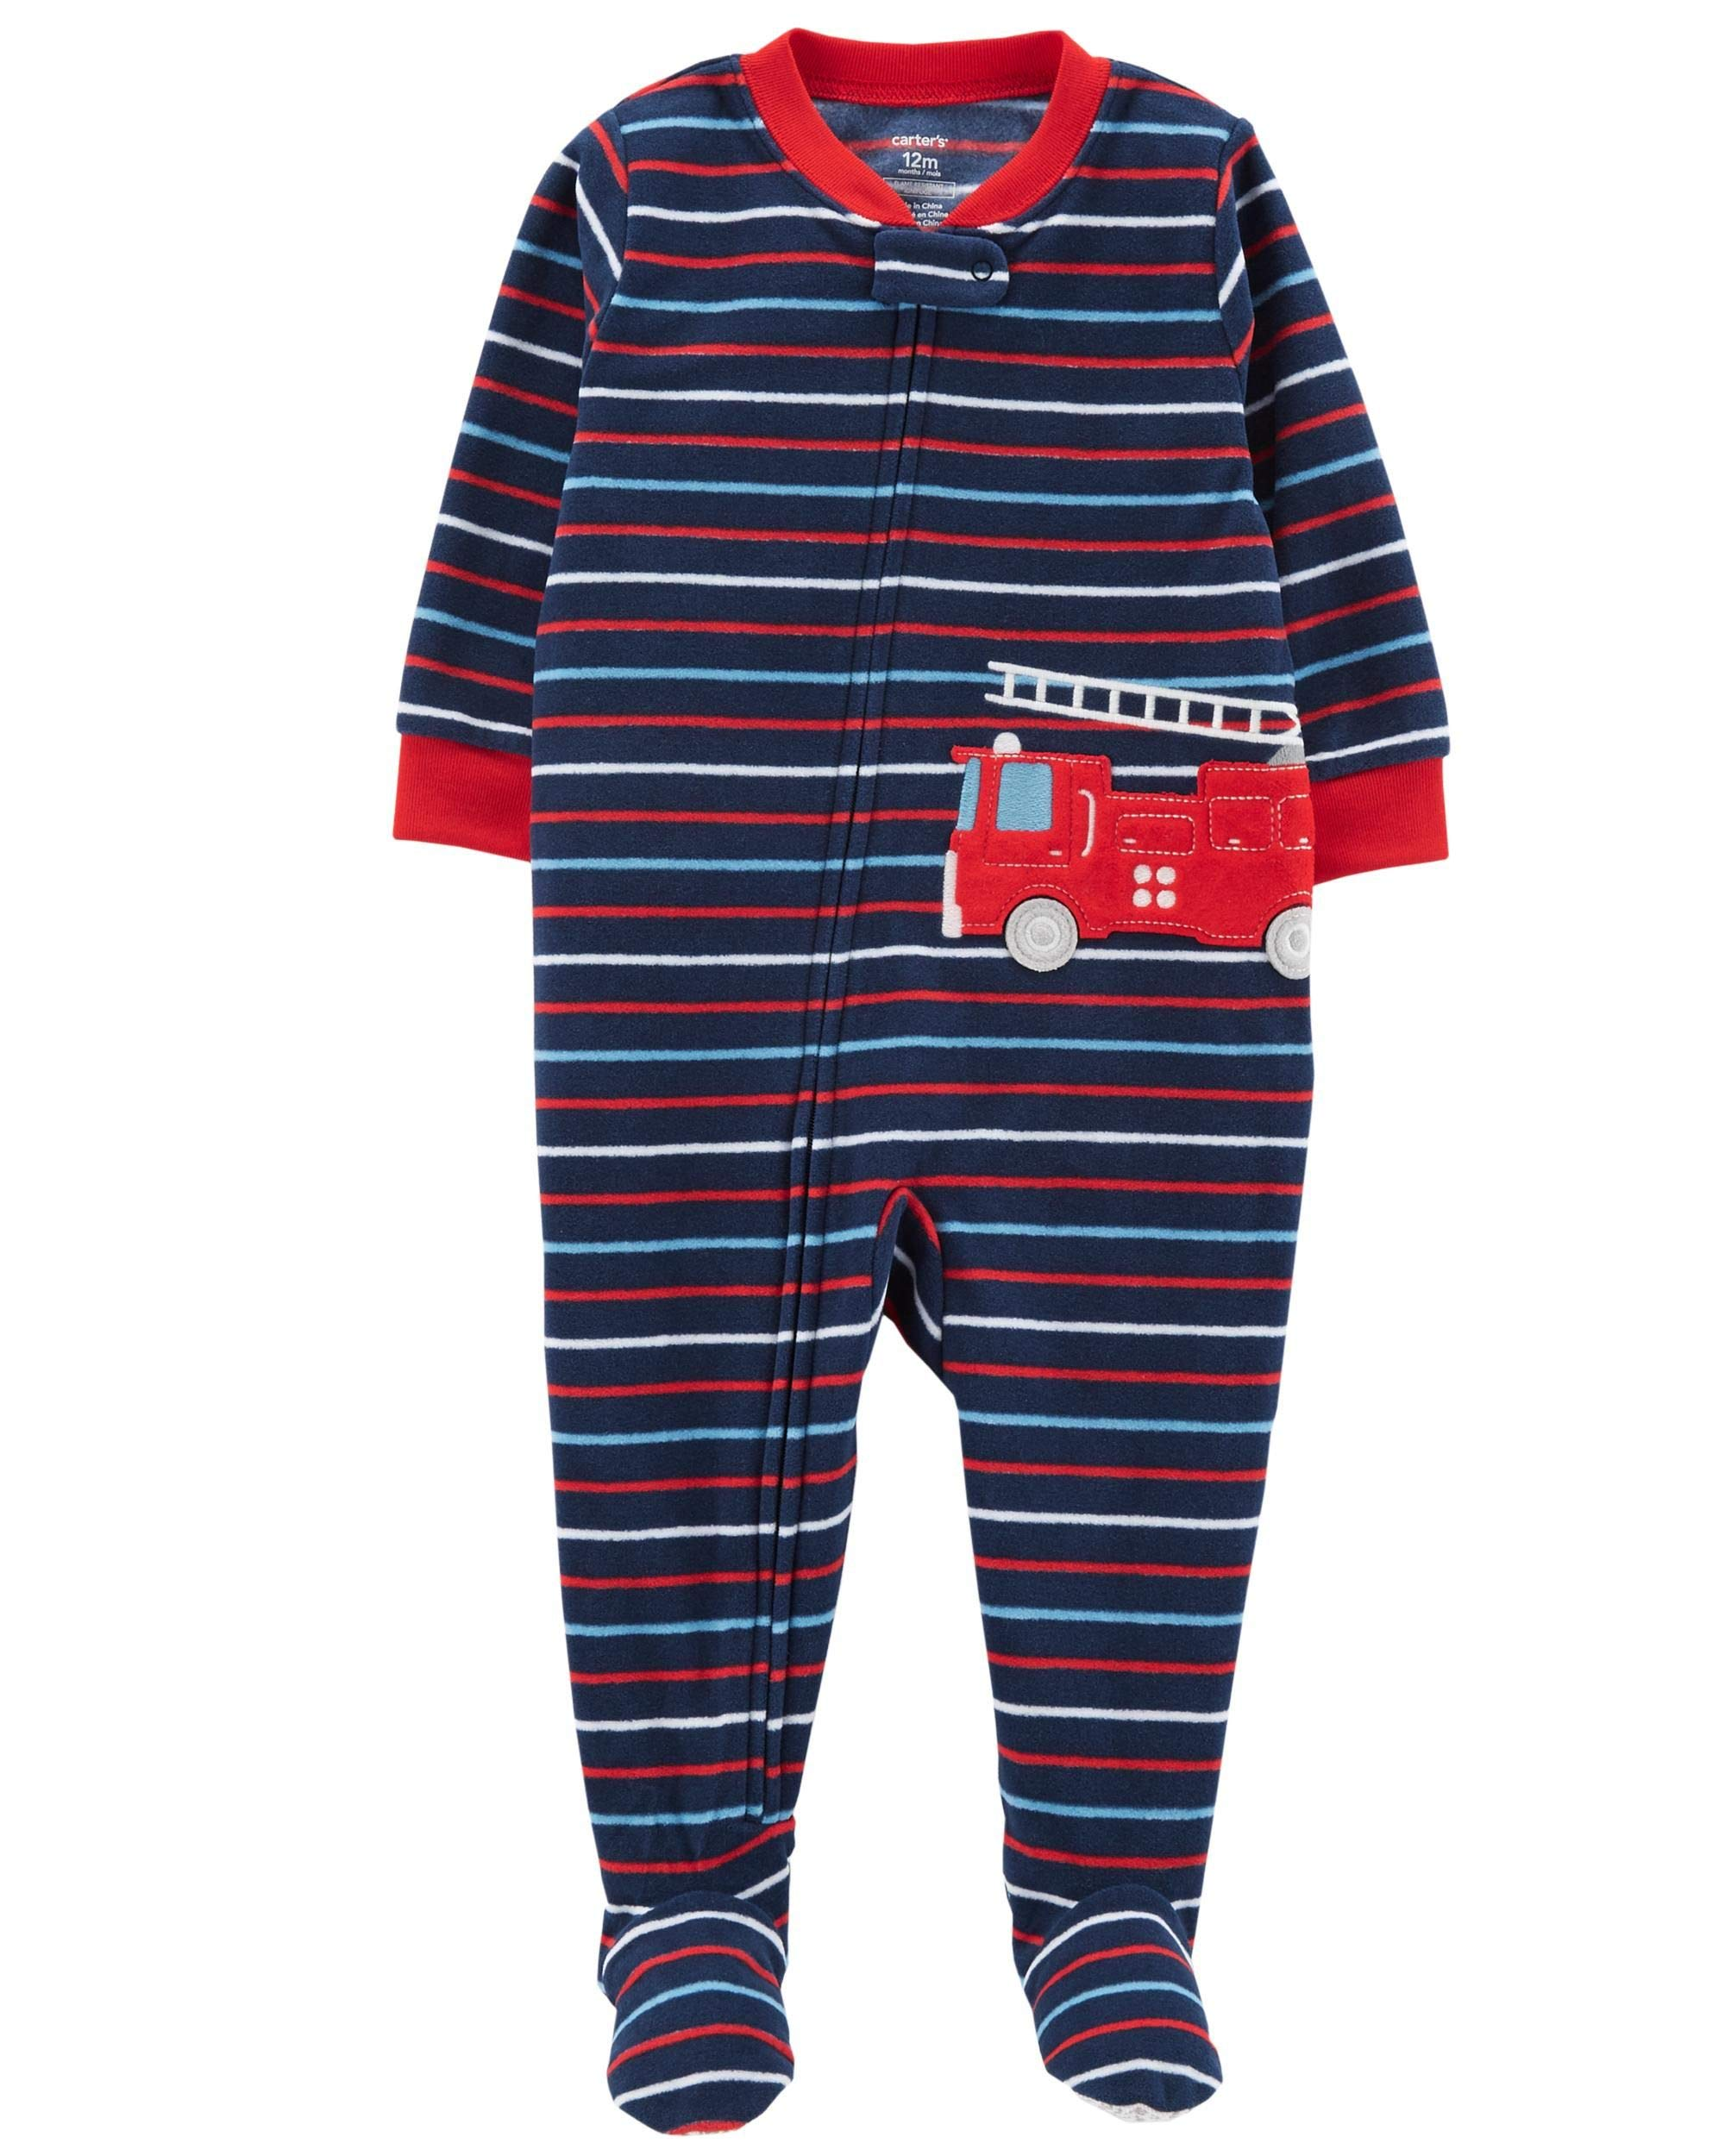 dfd898ea8 Galleon - Carter s Baby Boy s One Piece Fleece Pajamas 12M-5T